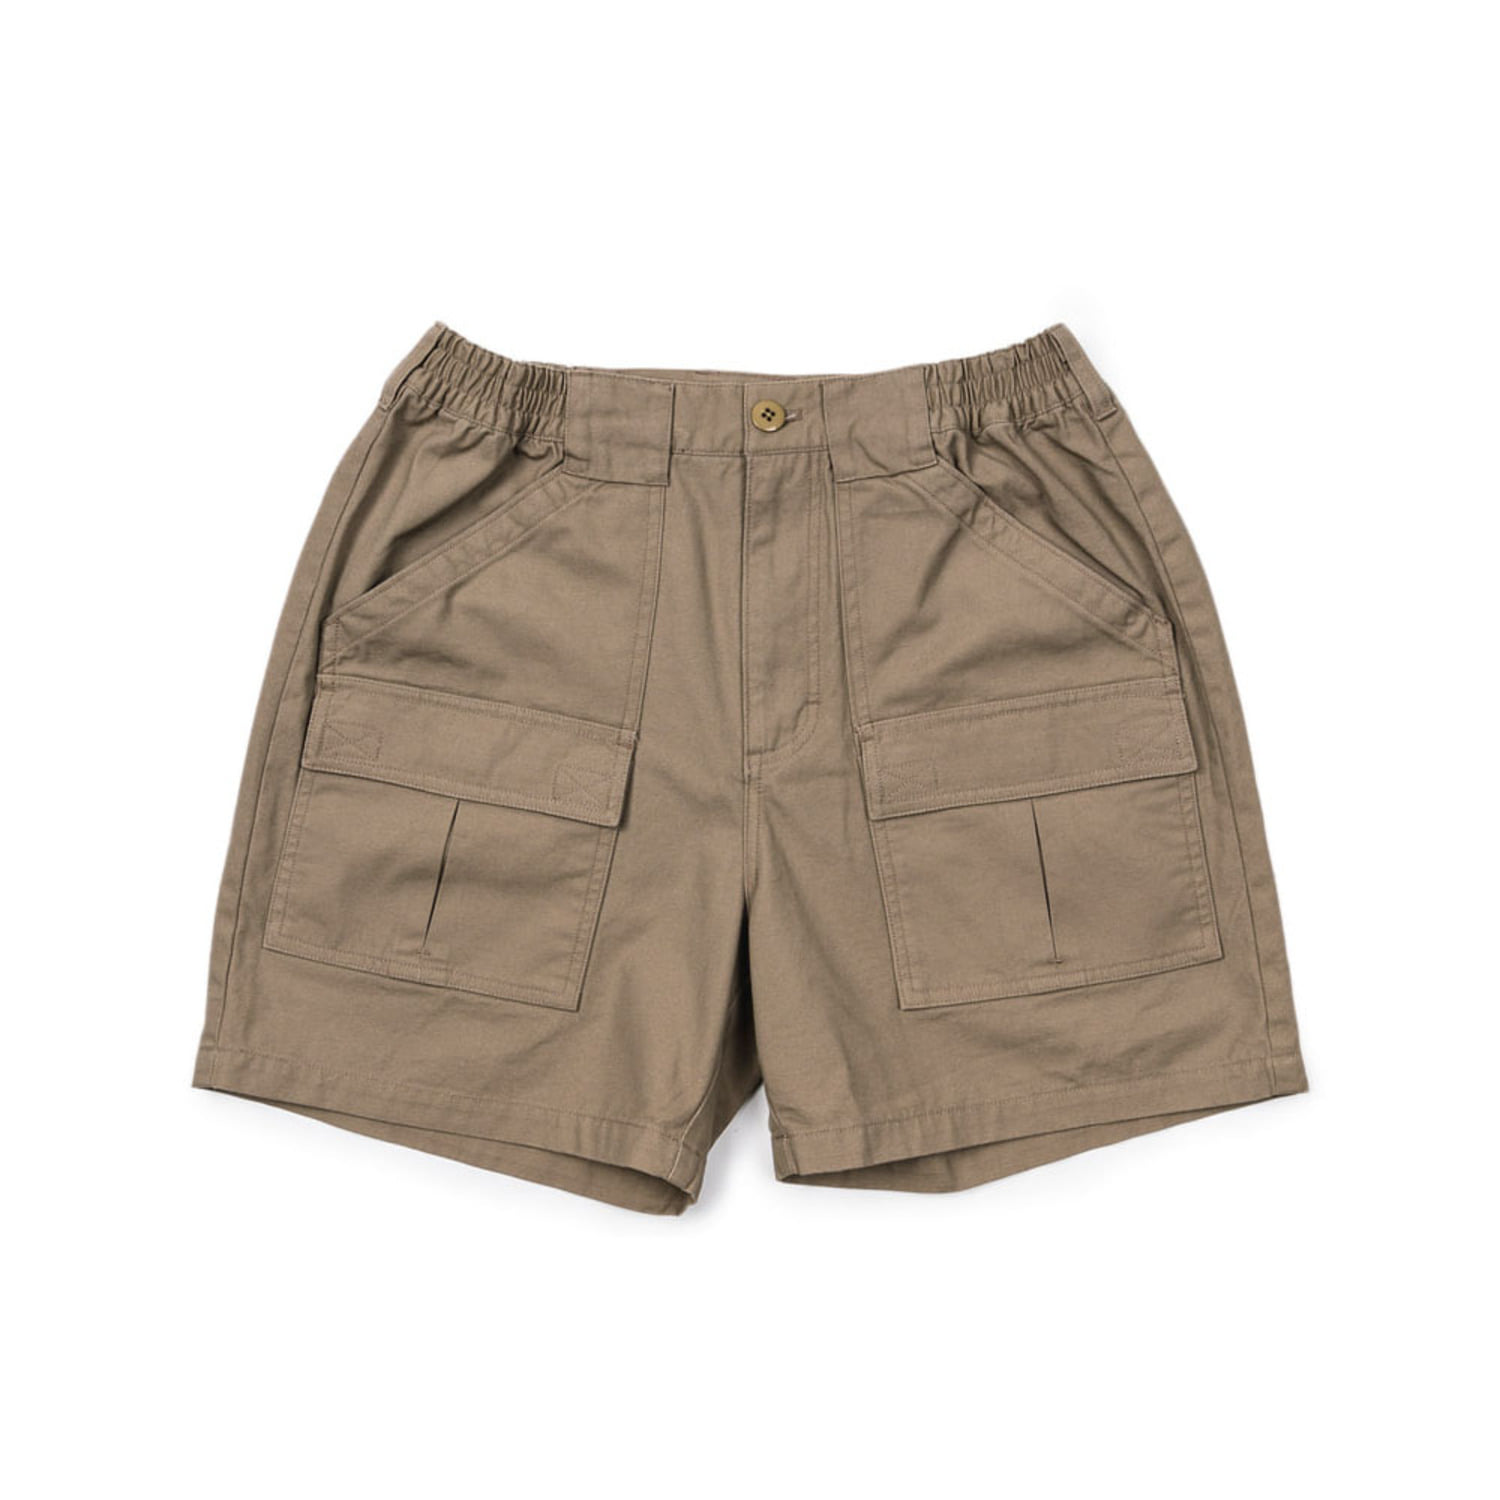 Big Union Cargo Shorts (Beige)